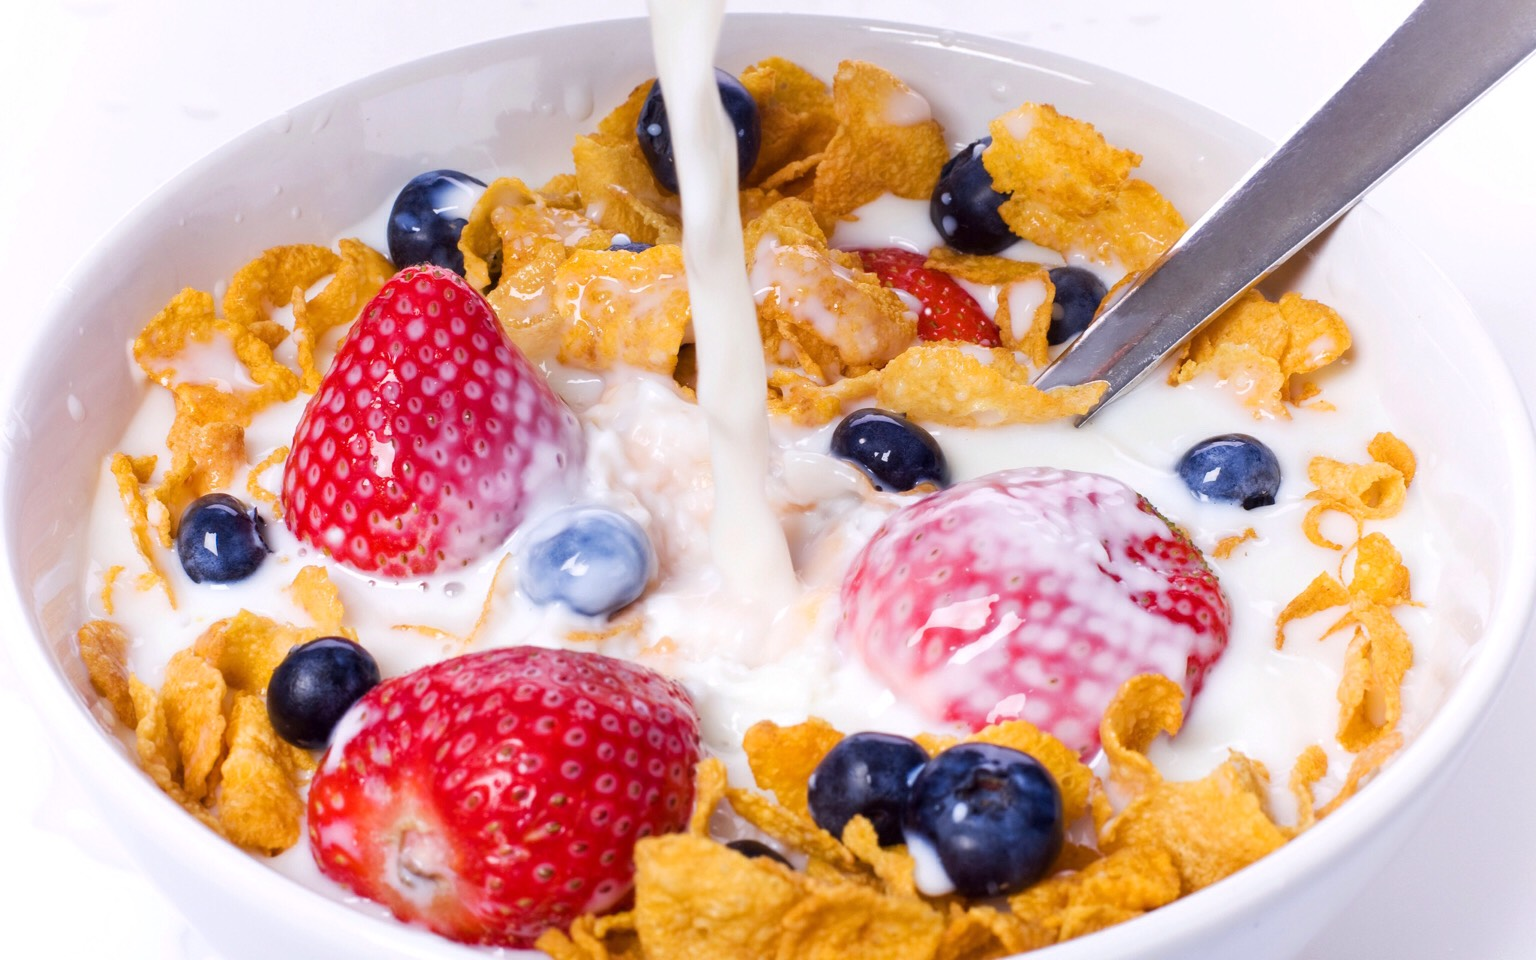 Breakfast Idea #1 healthy cornflake cereal with no added sugar (no frosted flakes etc) with a choice of 2-3 : strawberries, blueberries, raisins, raspberries, grapes, blackberries, a sliced banana, cranberries, or any other fruits of choice Whole milk, 2%, 1%, Skim or almond of your preference